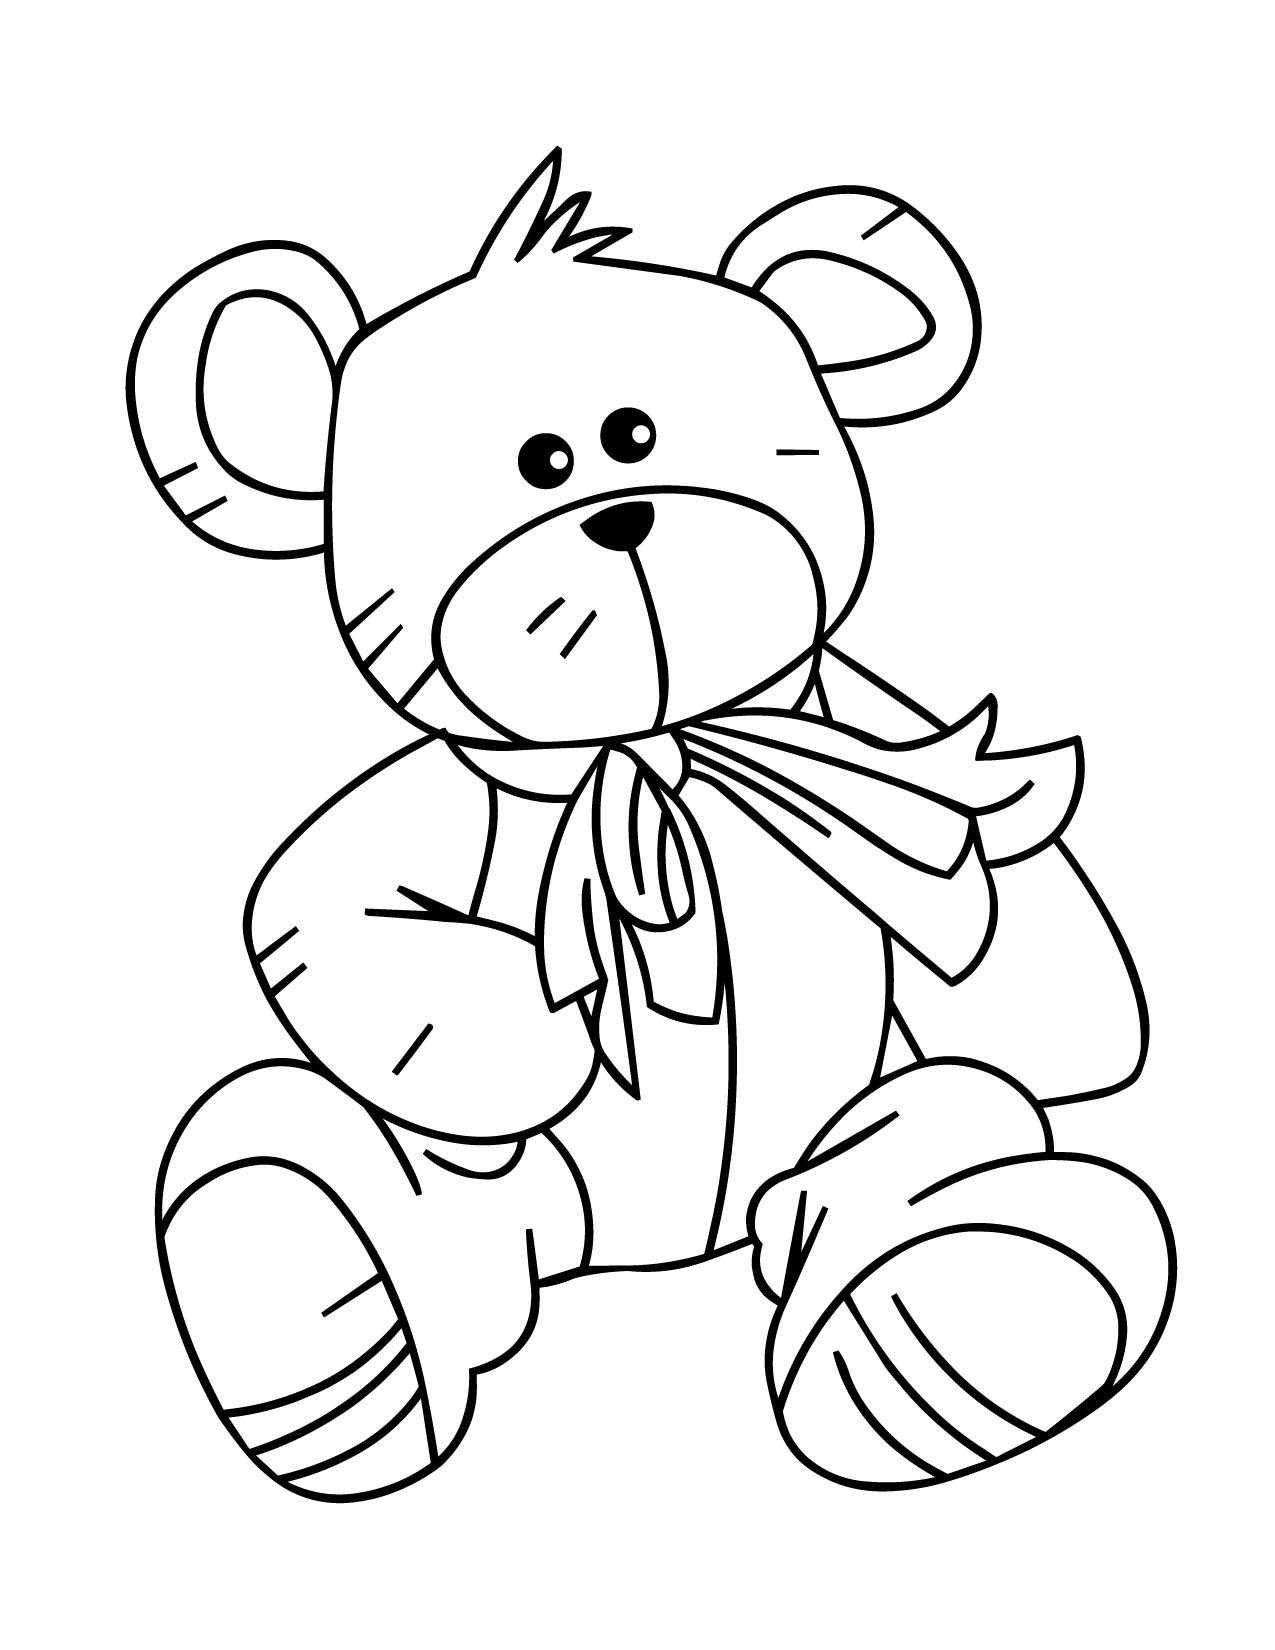 Bear Coloring Pages (7)